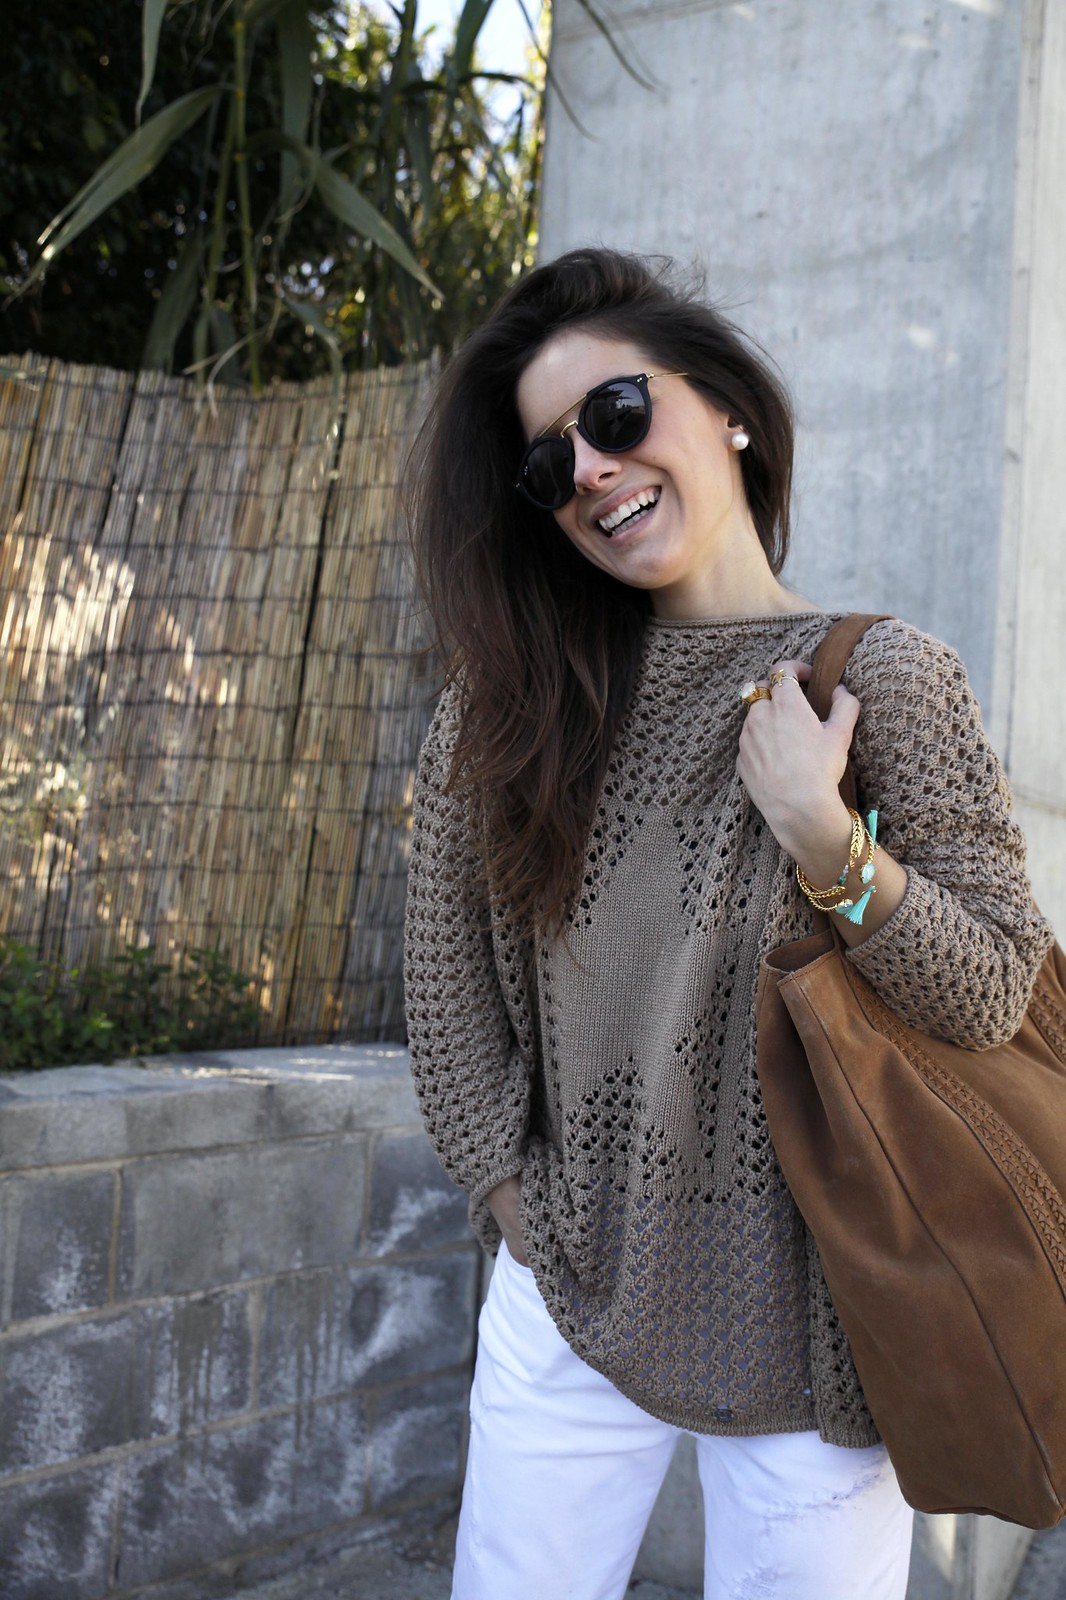 04_SPRING_NEUTRAL_OUTFIT_STREET_STYLE_FASHION_BLOGGER_INFLUENCER_BARCELONA_THEGUESTGIRL